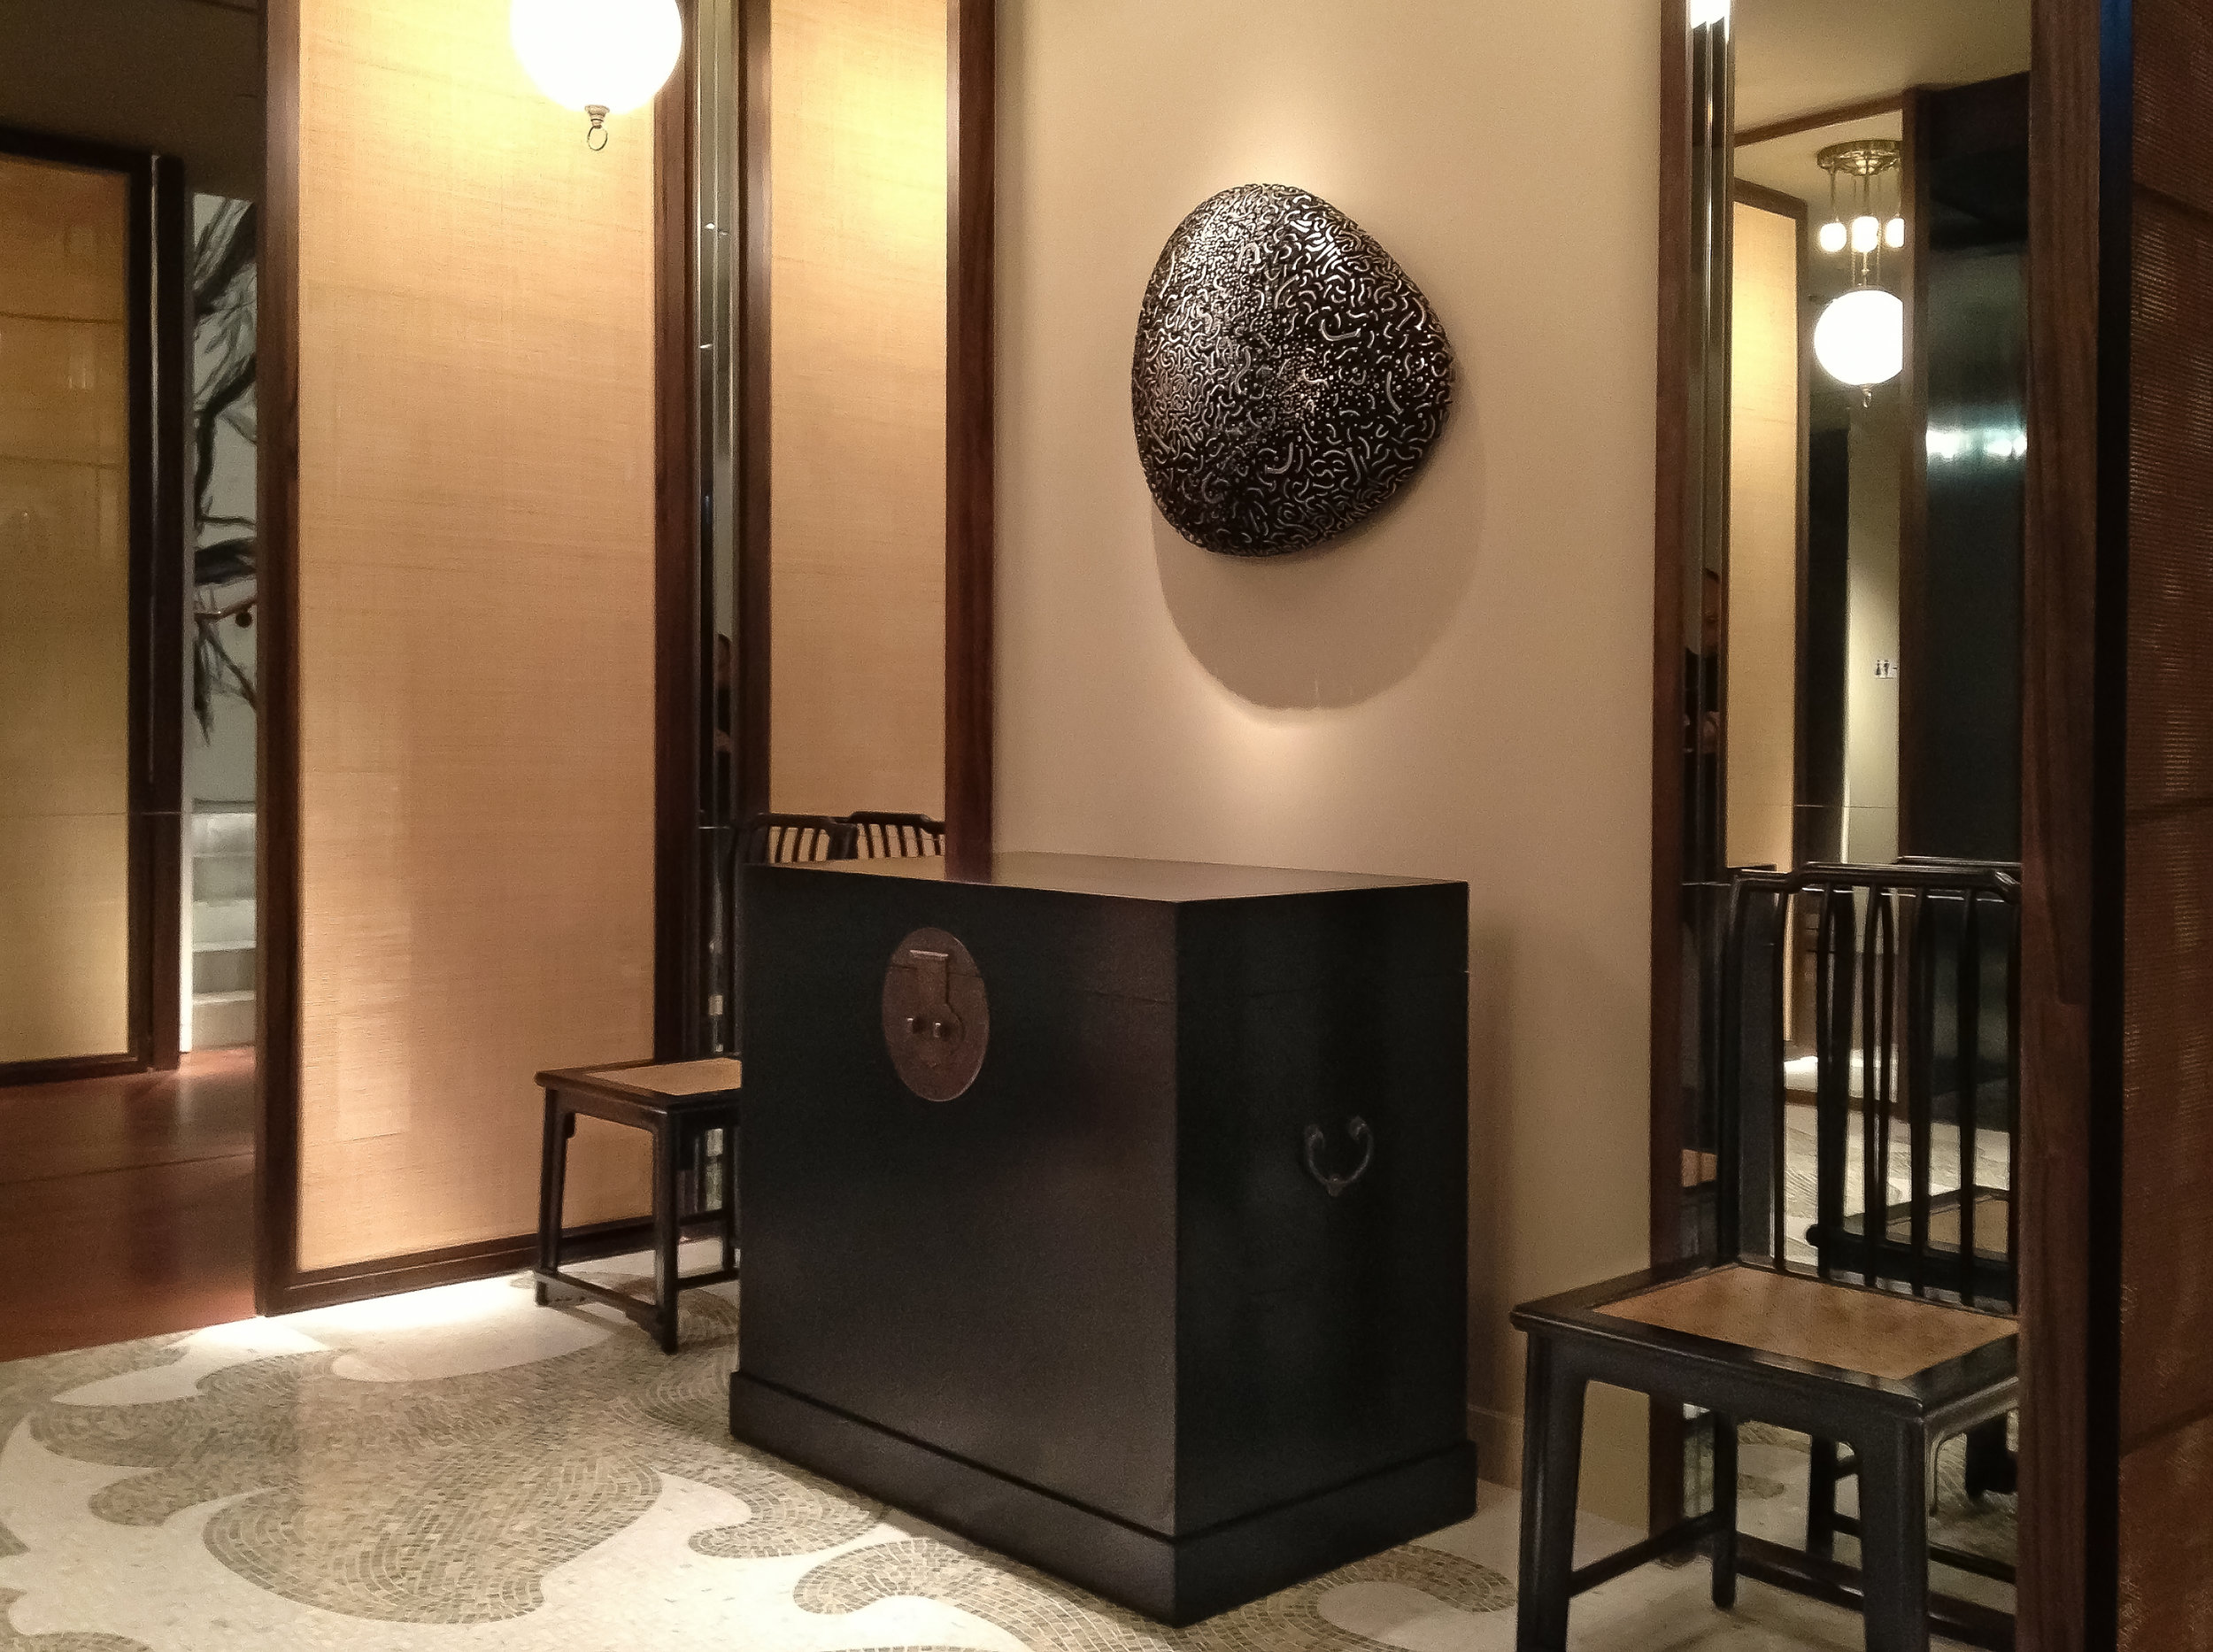 ....chinese furniture | mandarin oriental trunk..中式家具 | 文华东方箱子....